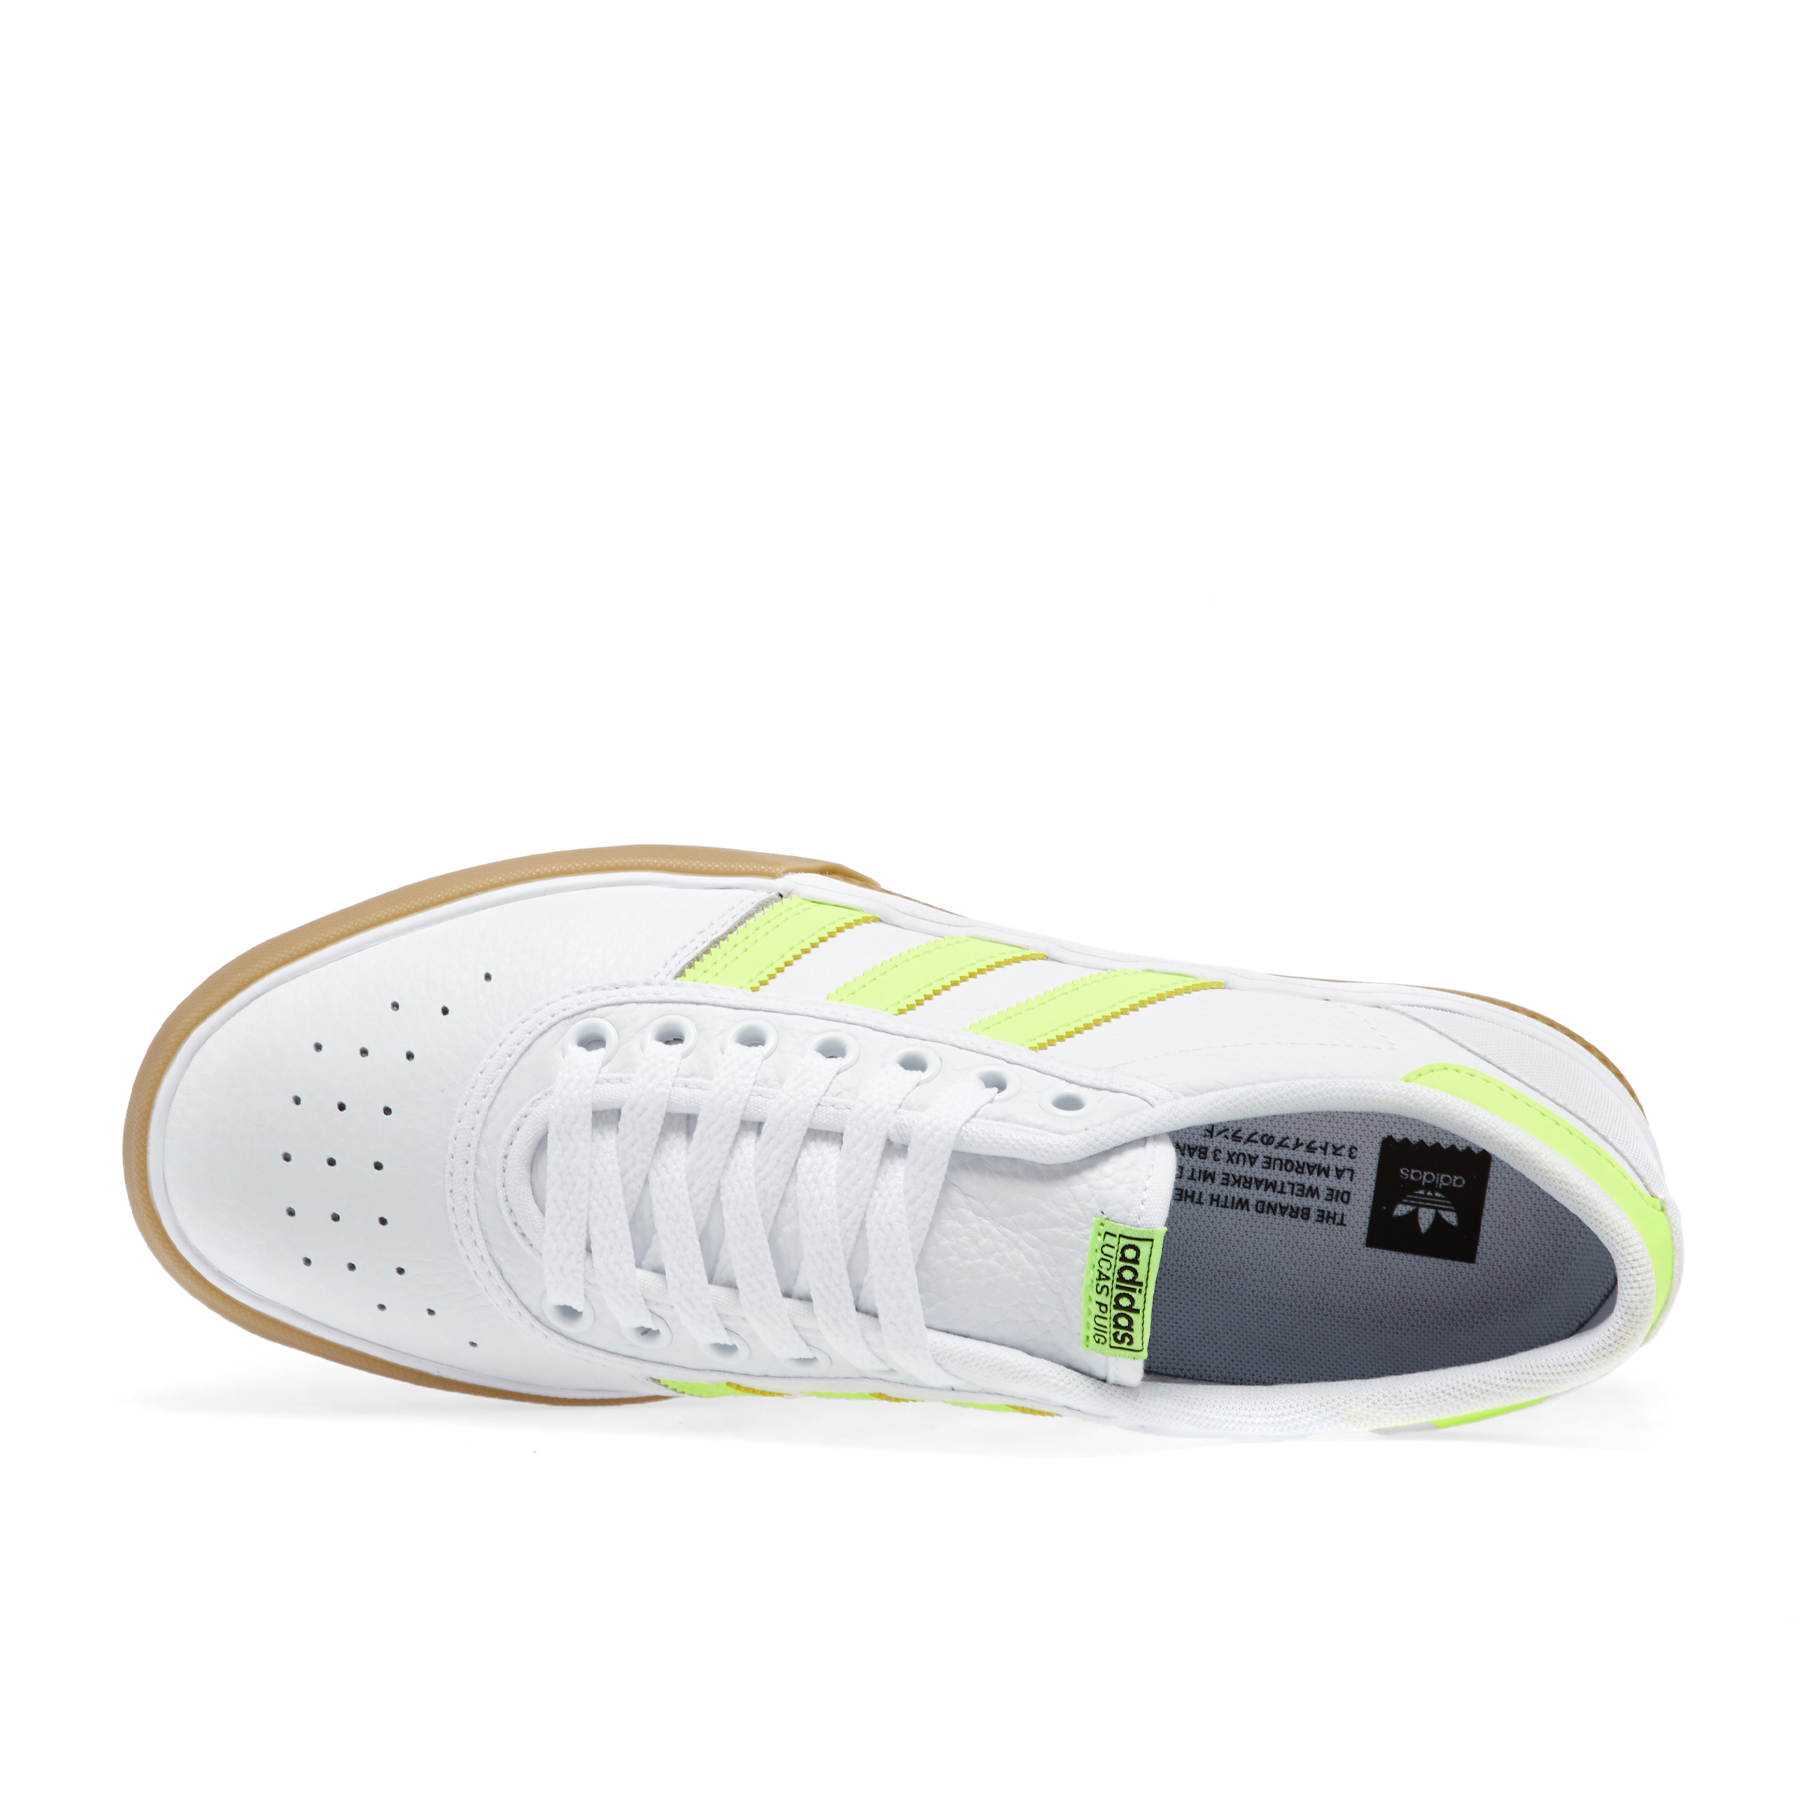 Adidas Lucas Premiere Schuhe Free Delivery options on All